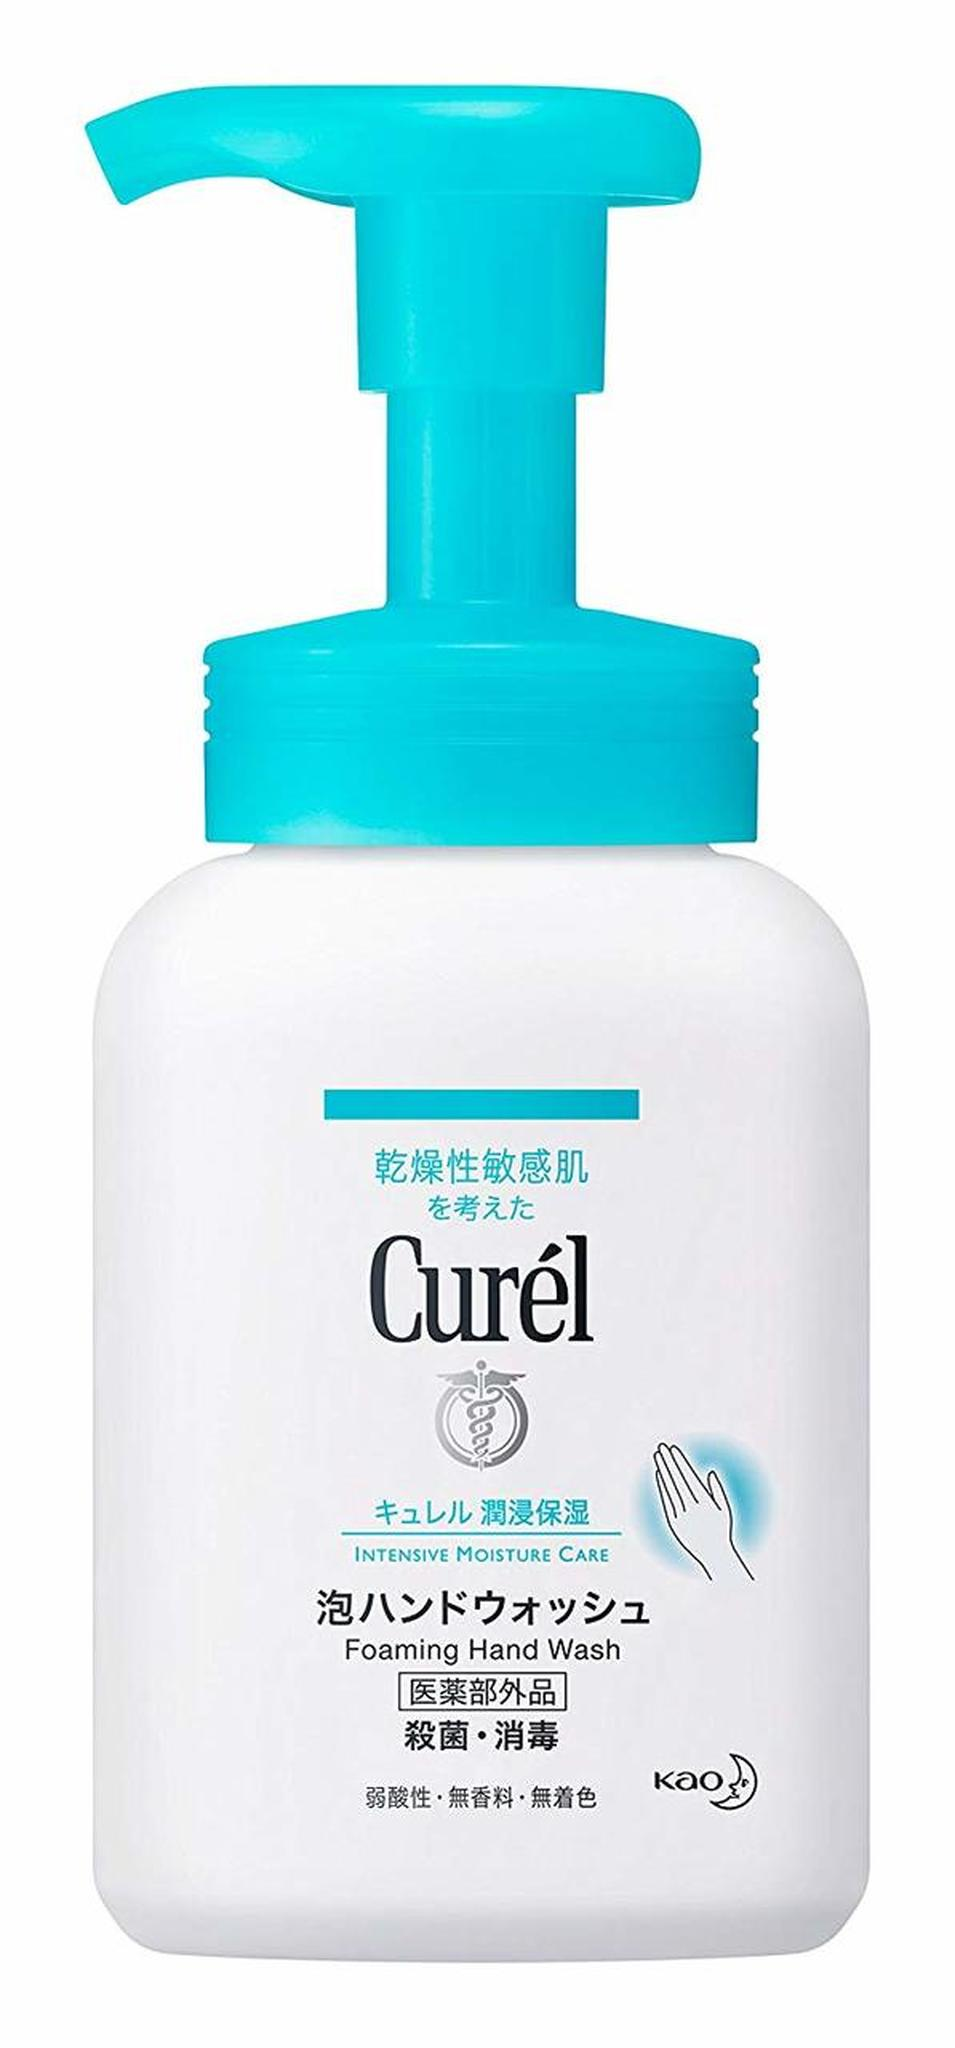 Curel Intensive Moisture Care Foaming Hand Wash